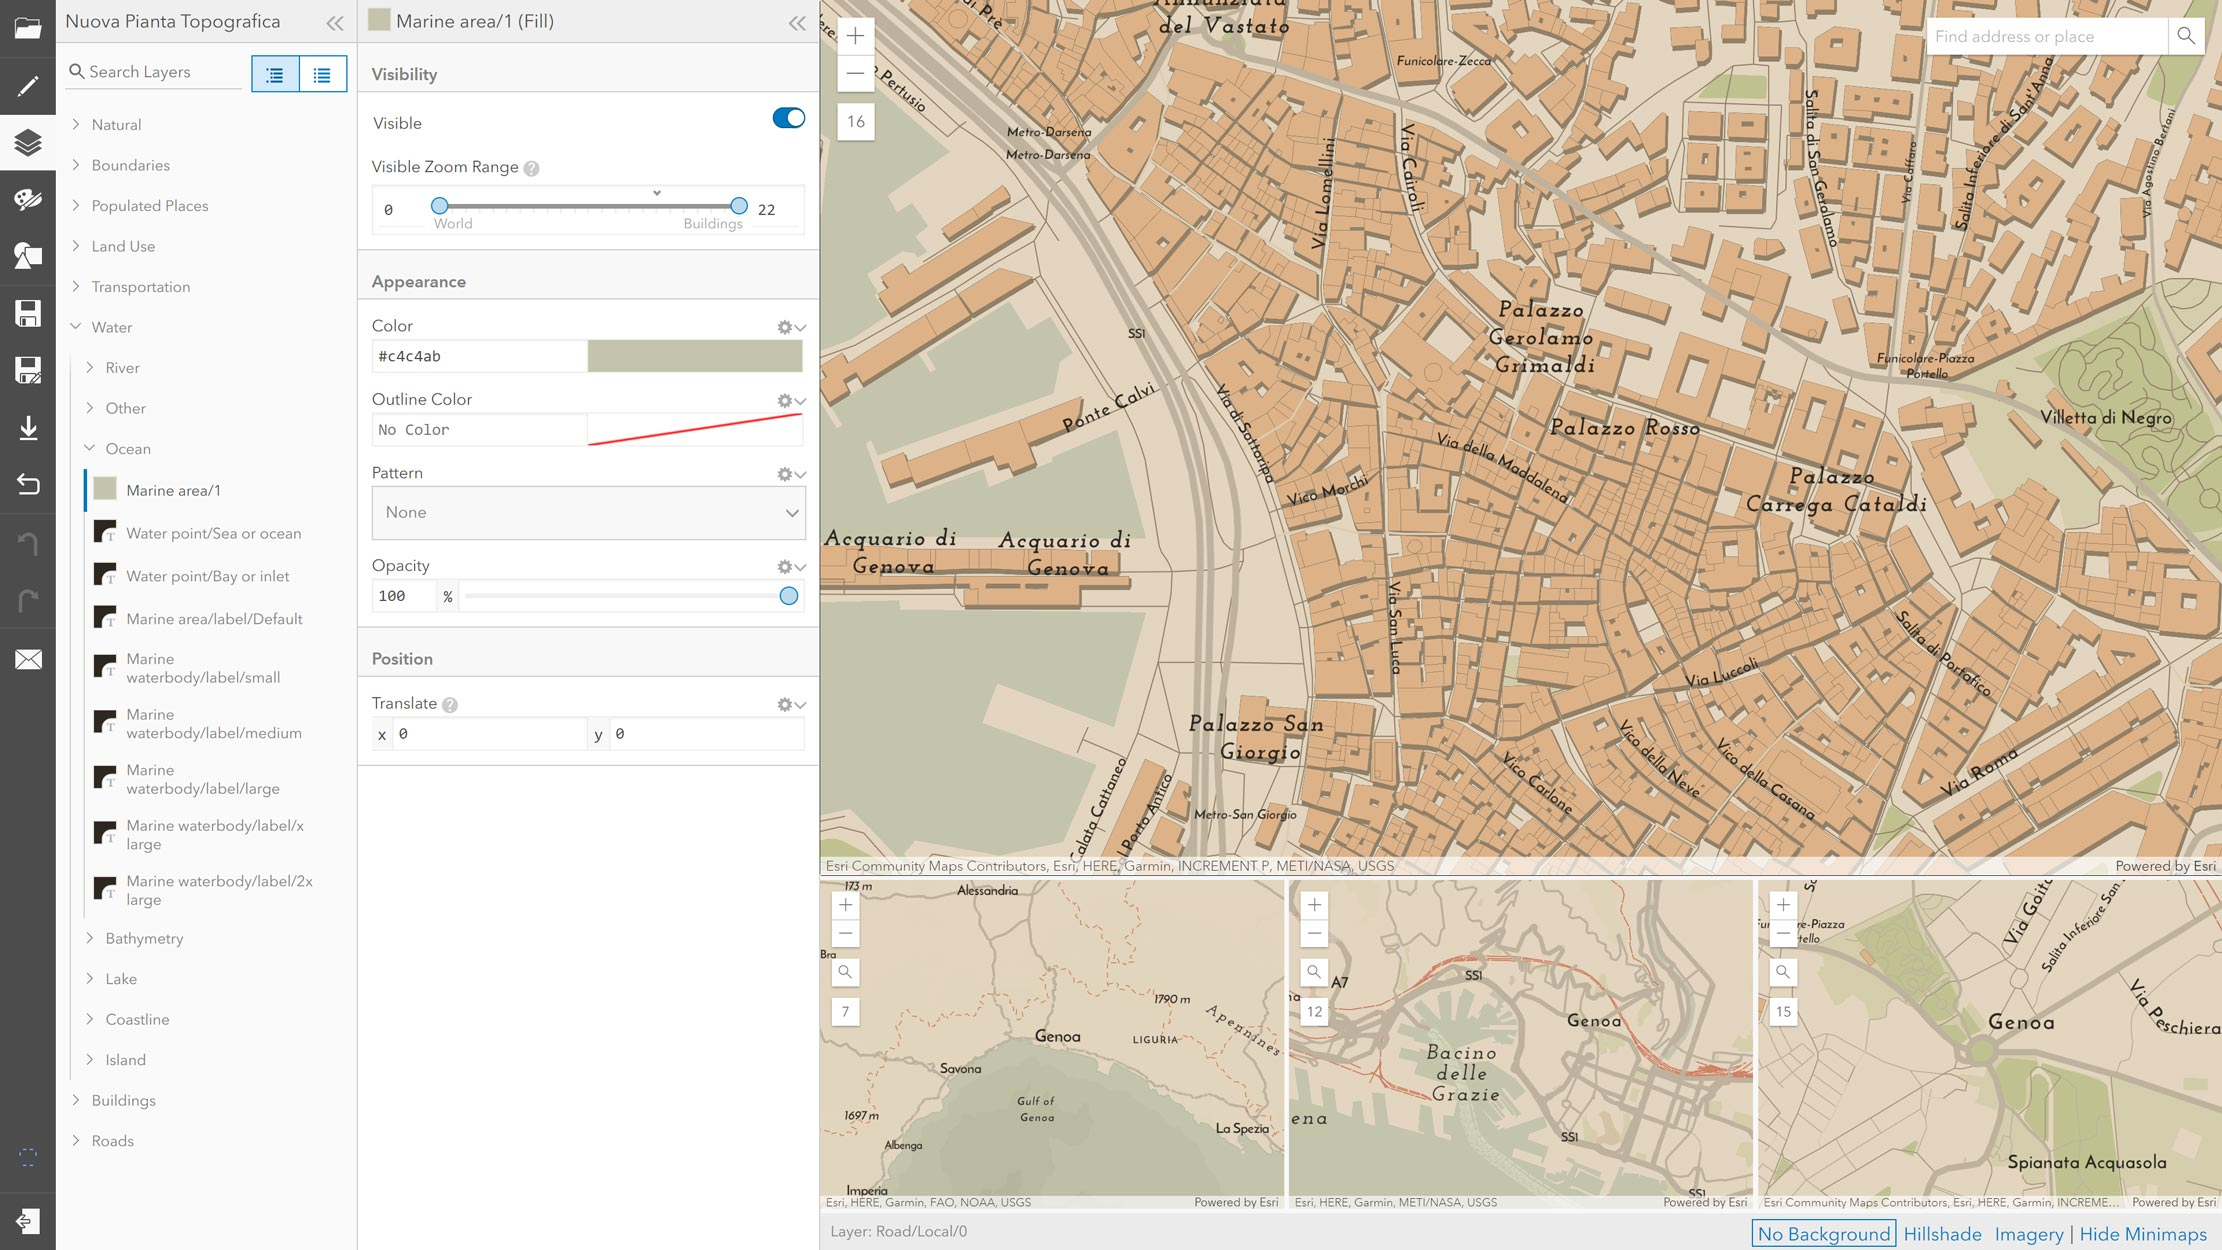 Picture 3: Editing the World Topographic Map in the ArcGIS Vector Tile Style Editor.